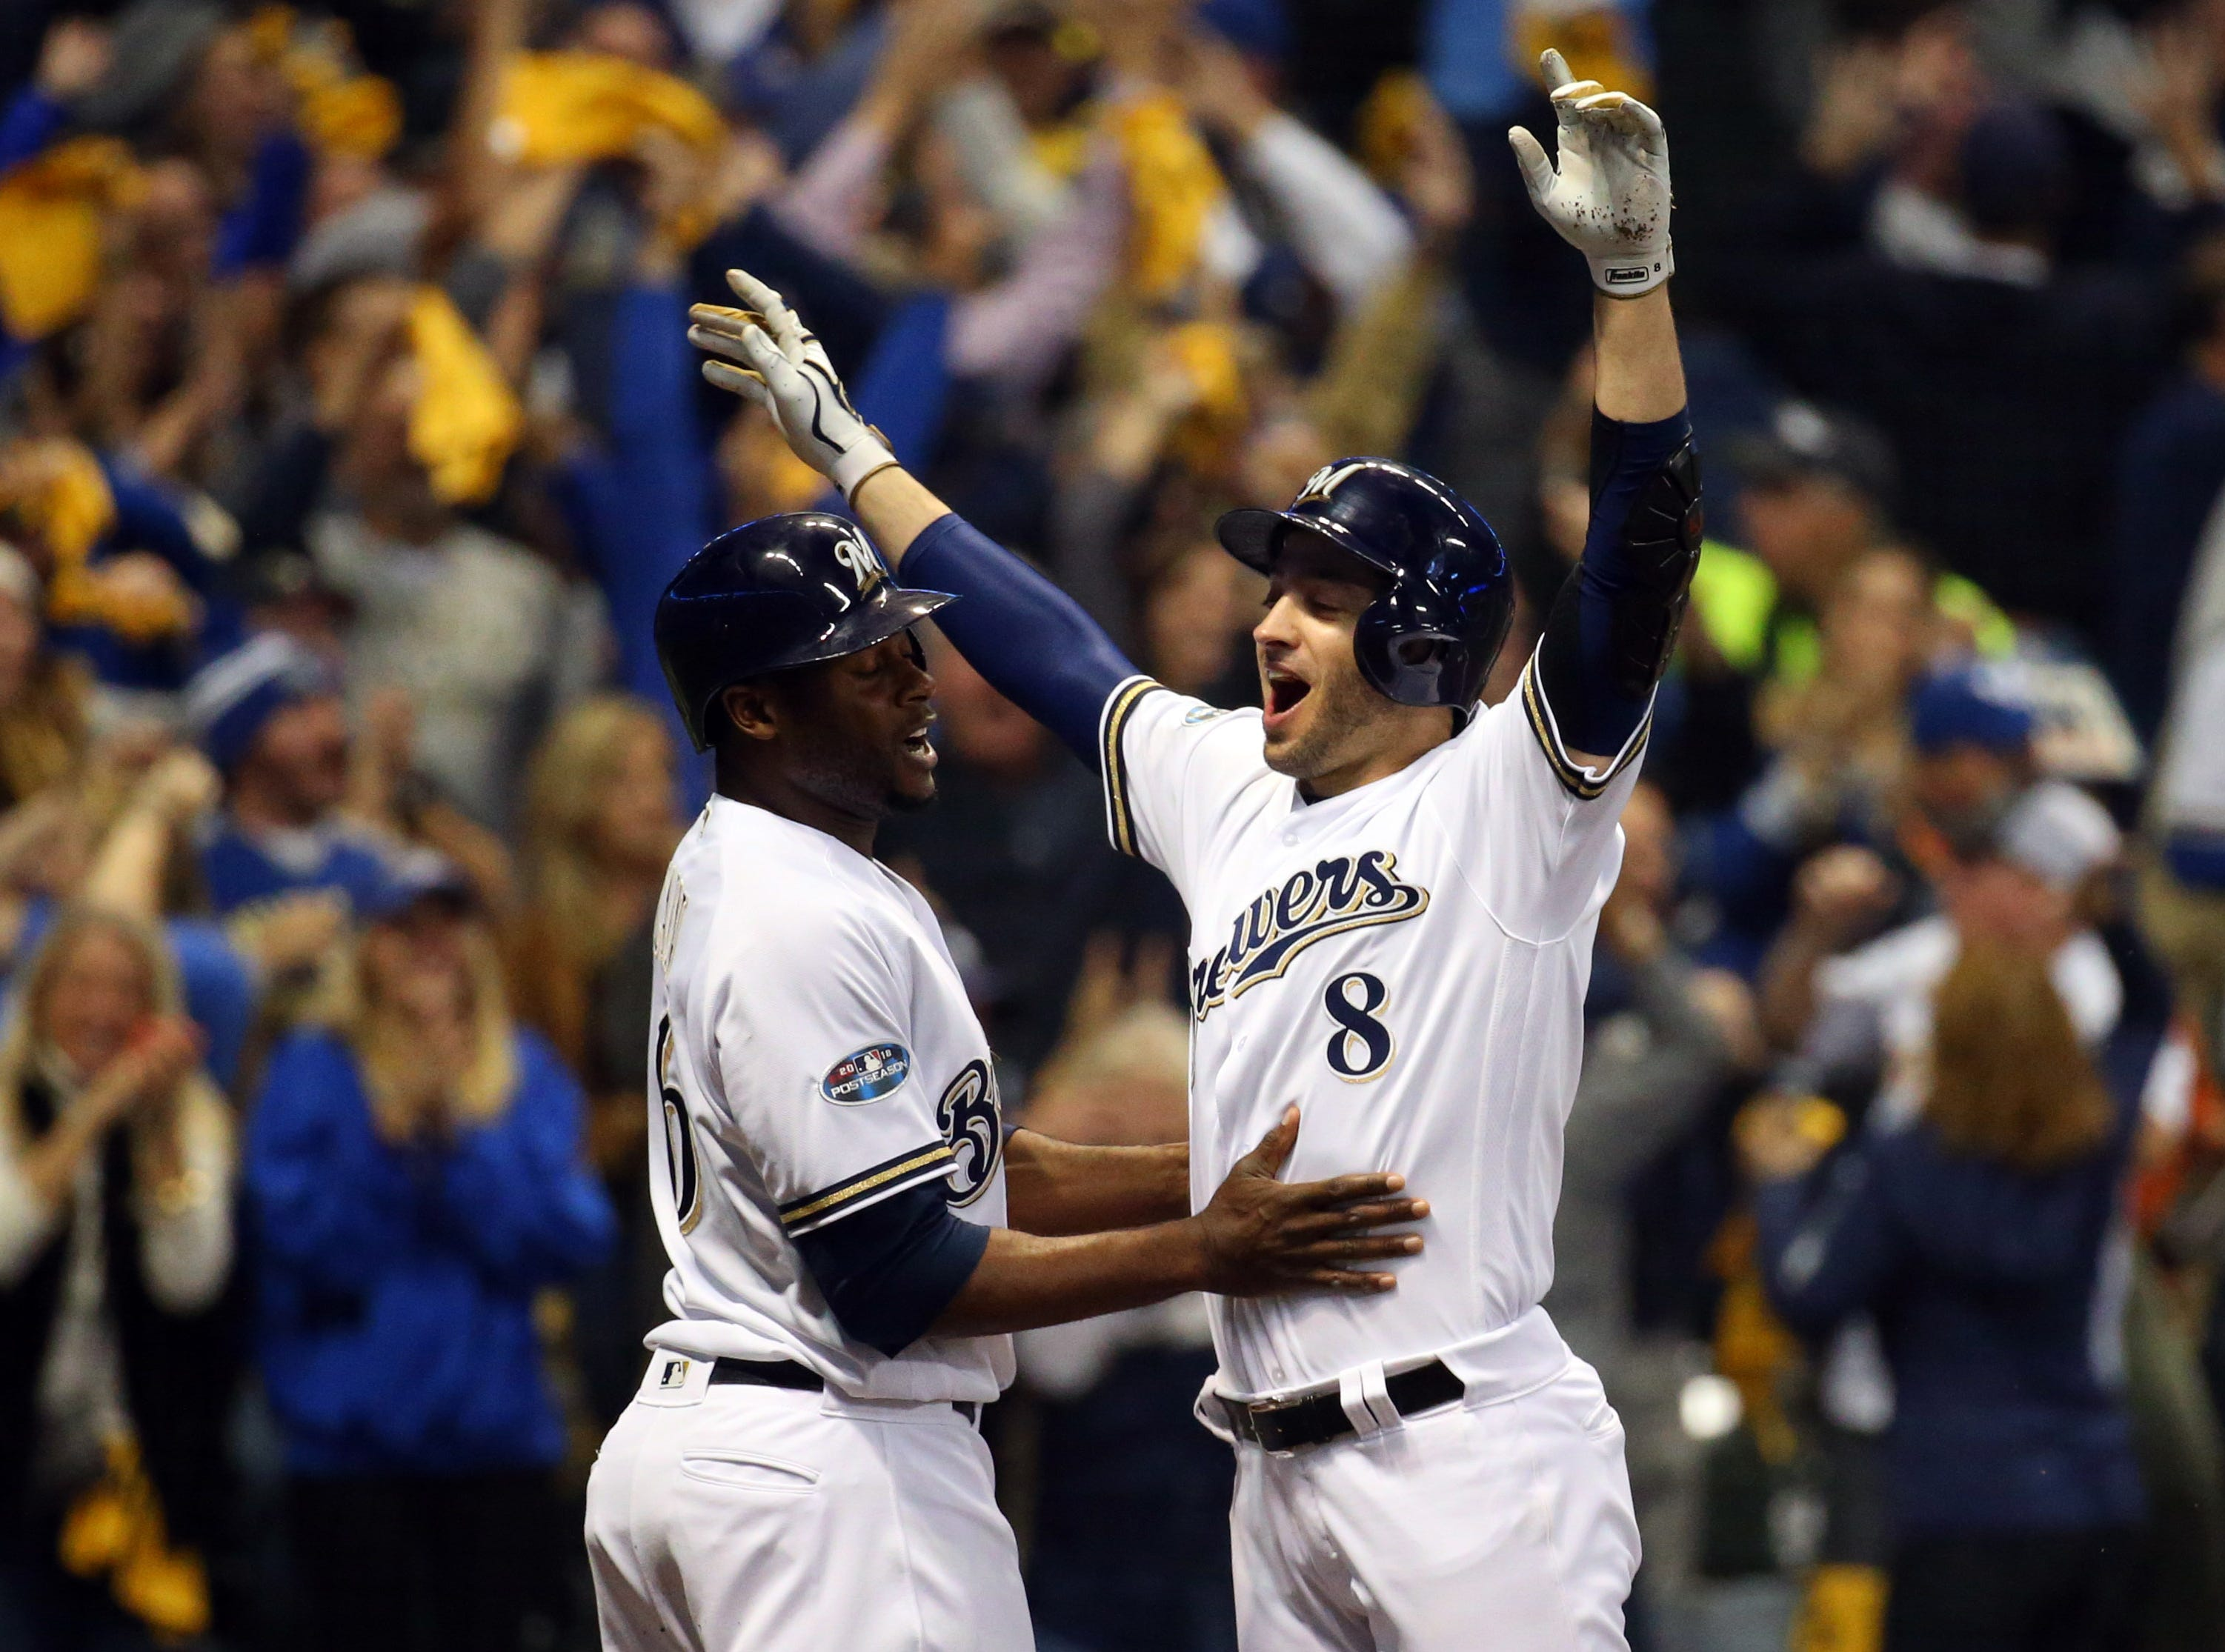 NLCS Game 6: Lorenzo Cain and Ryan Braun celebrate after scoring in the first inning.